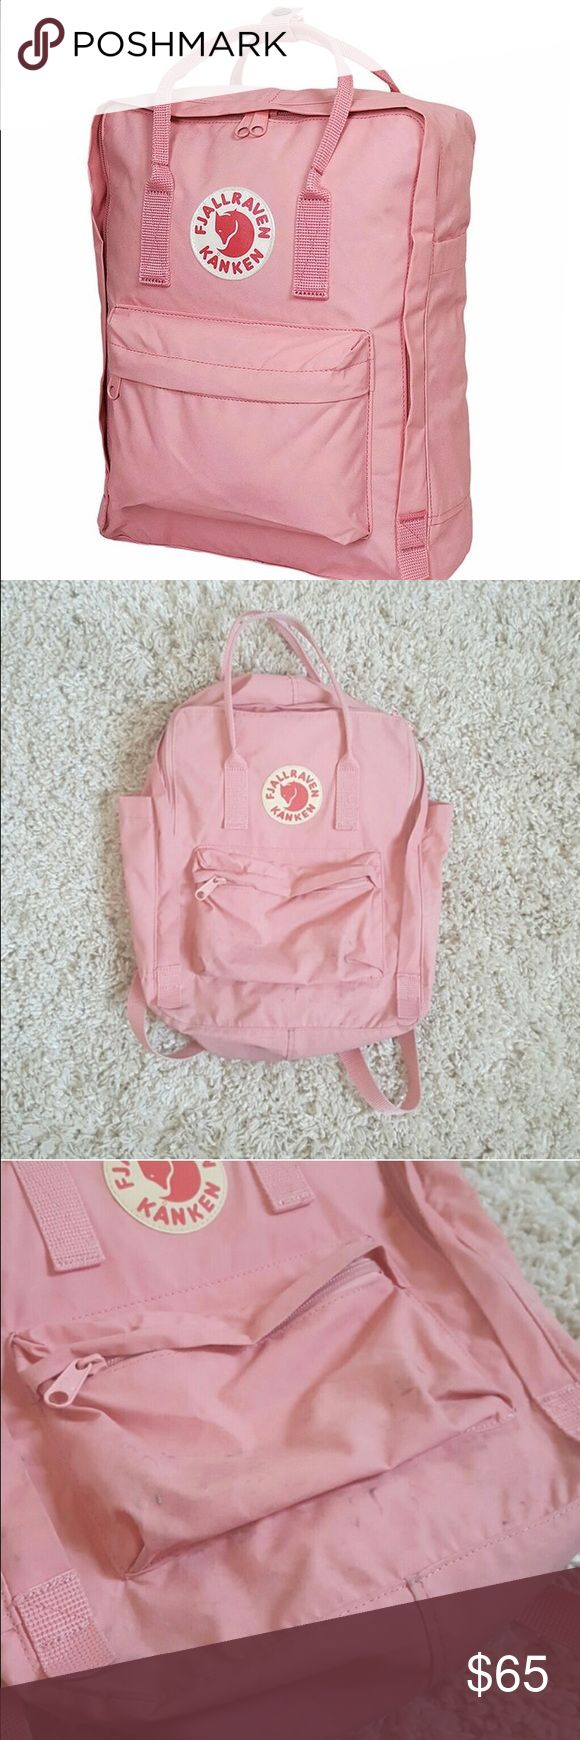 Fjallraven Kanken full size baby pink backpack Super cute! There are stains on the bottom from being set on the ground but the backpack has no functional flaws. Selling because I have too many bags! Fjallraven Bags Backpacks